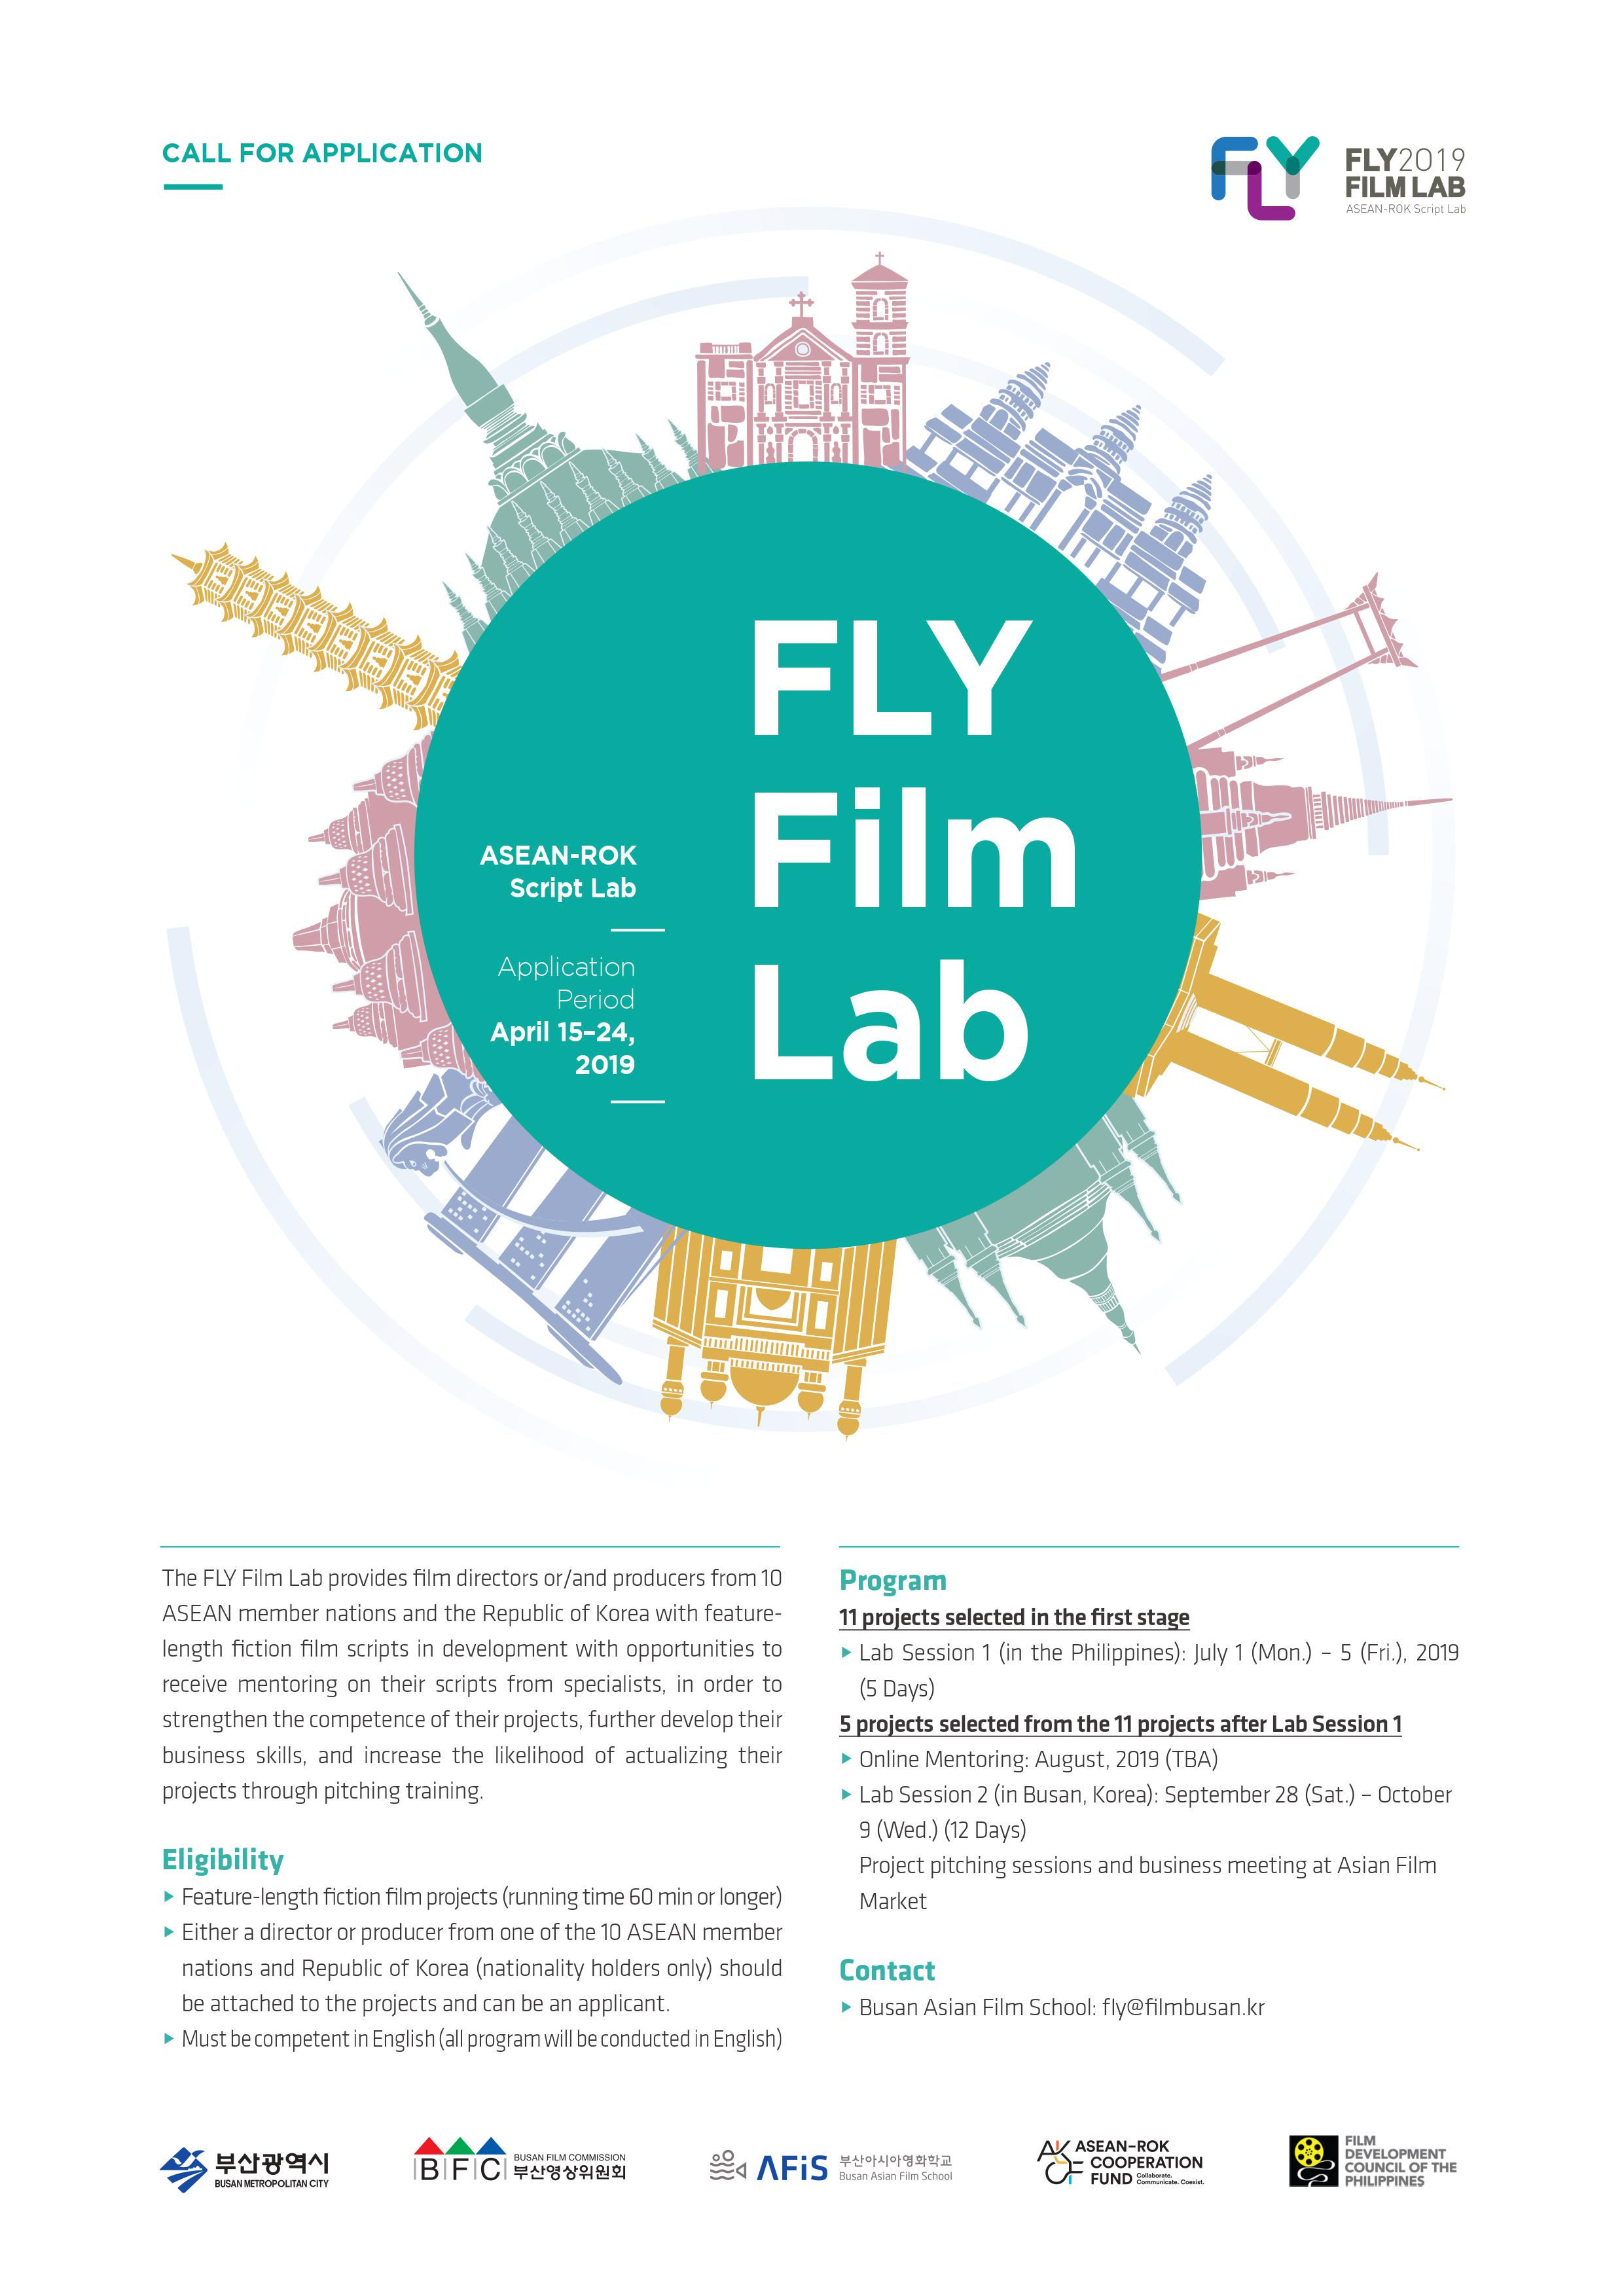 Call for FLY Film Lab 2019